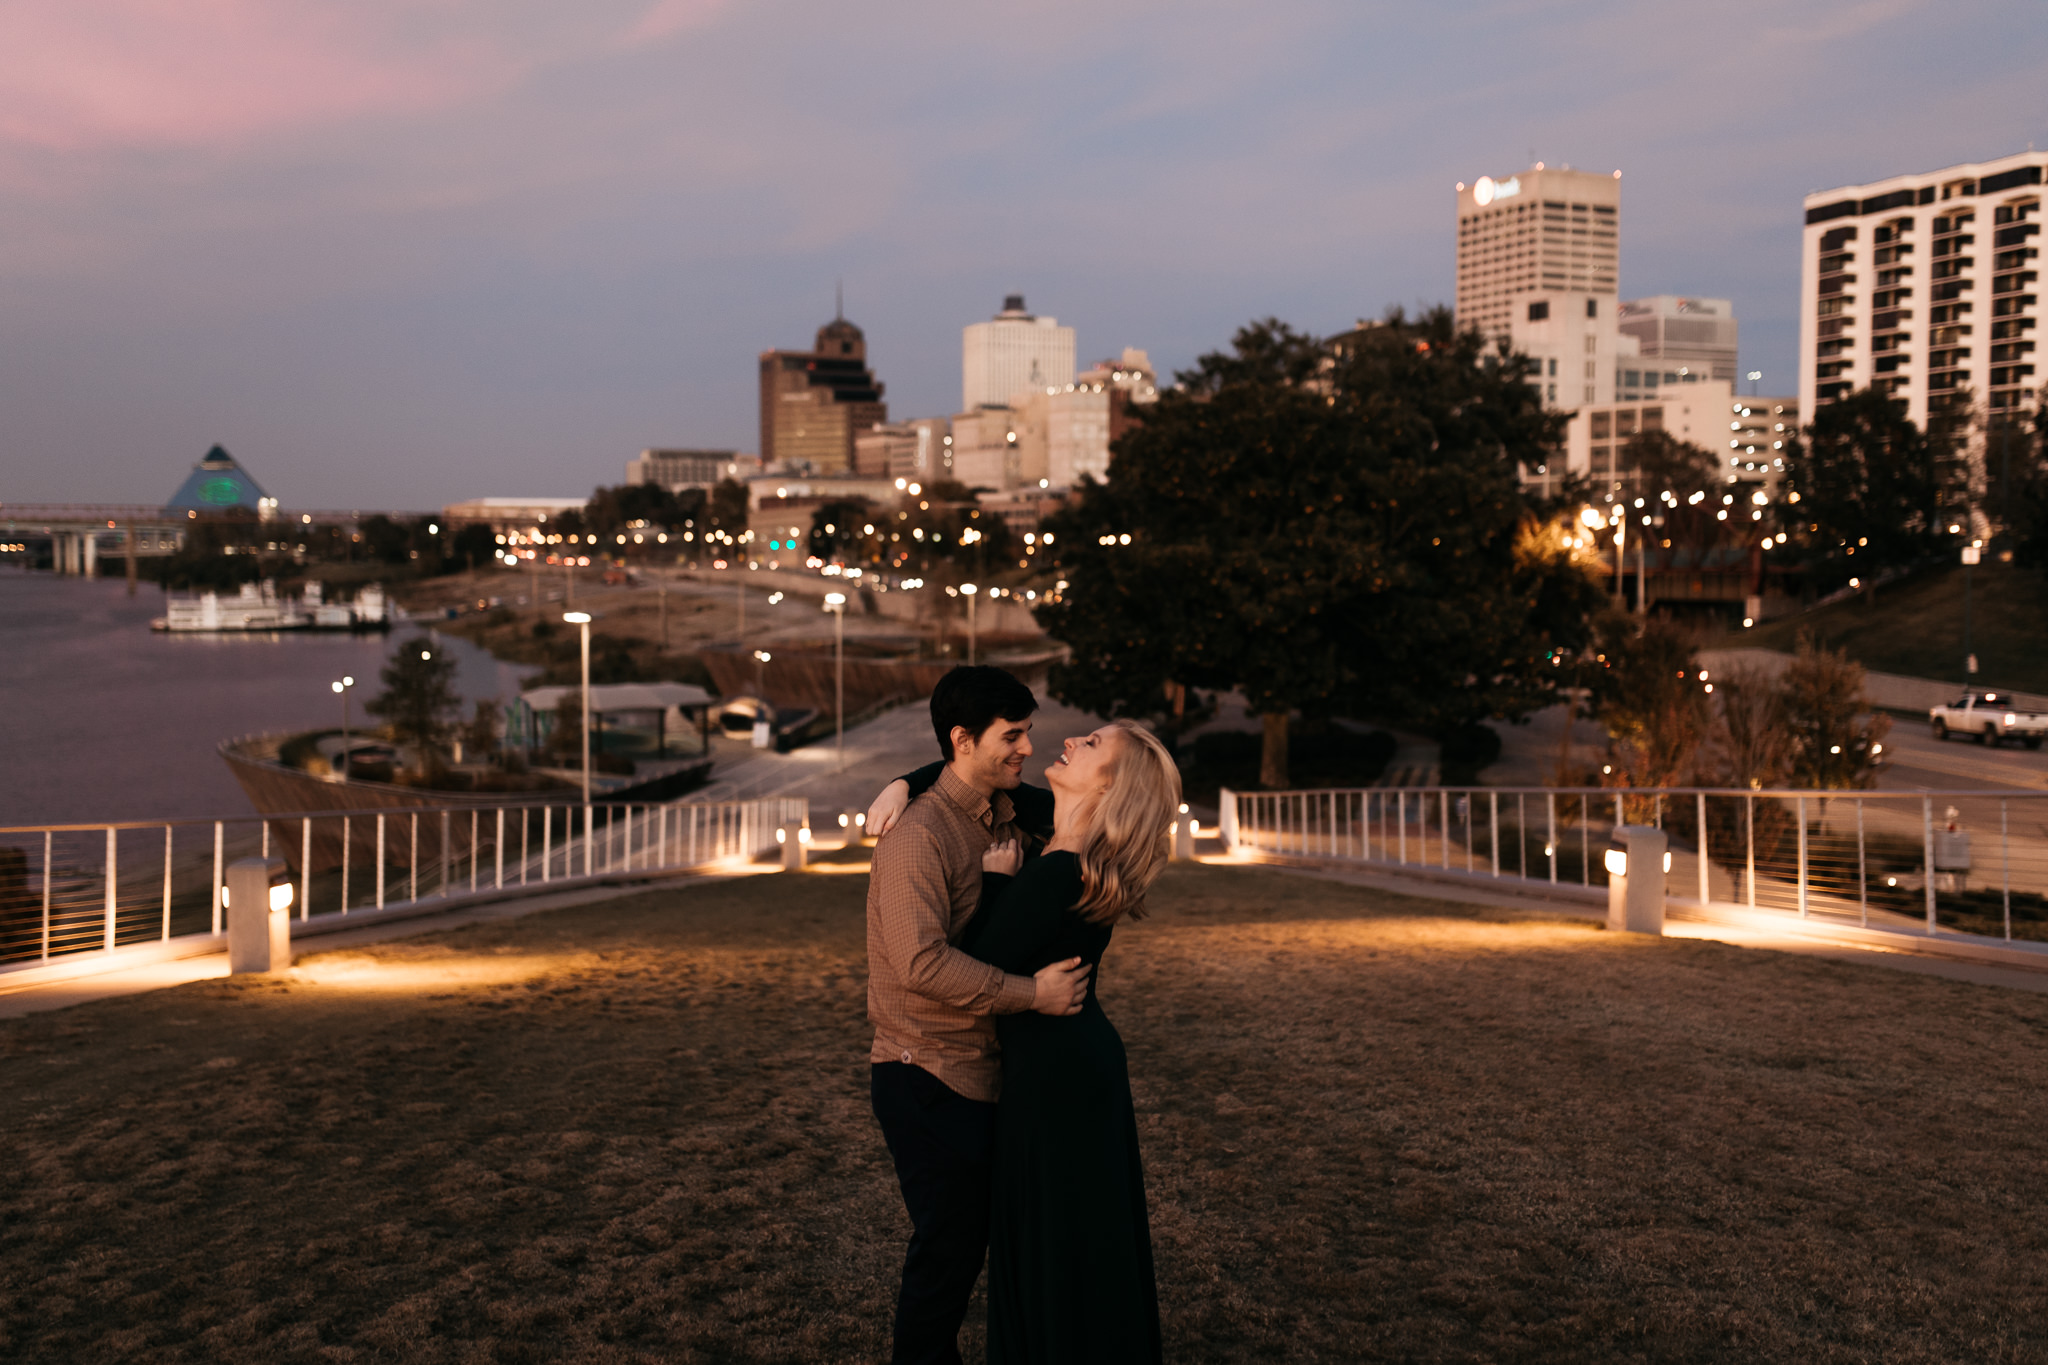 memphis-wedding-photographer-cassie-cook-photography-cafe-keough-engagement-photoshoot-coffee-engagement-50.jpg